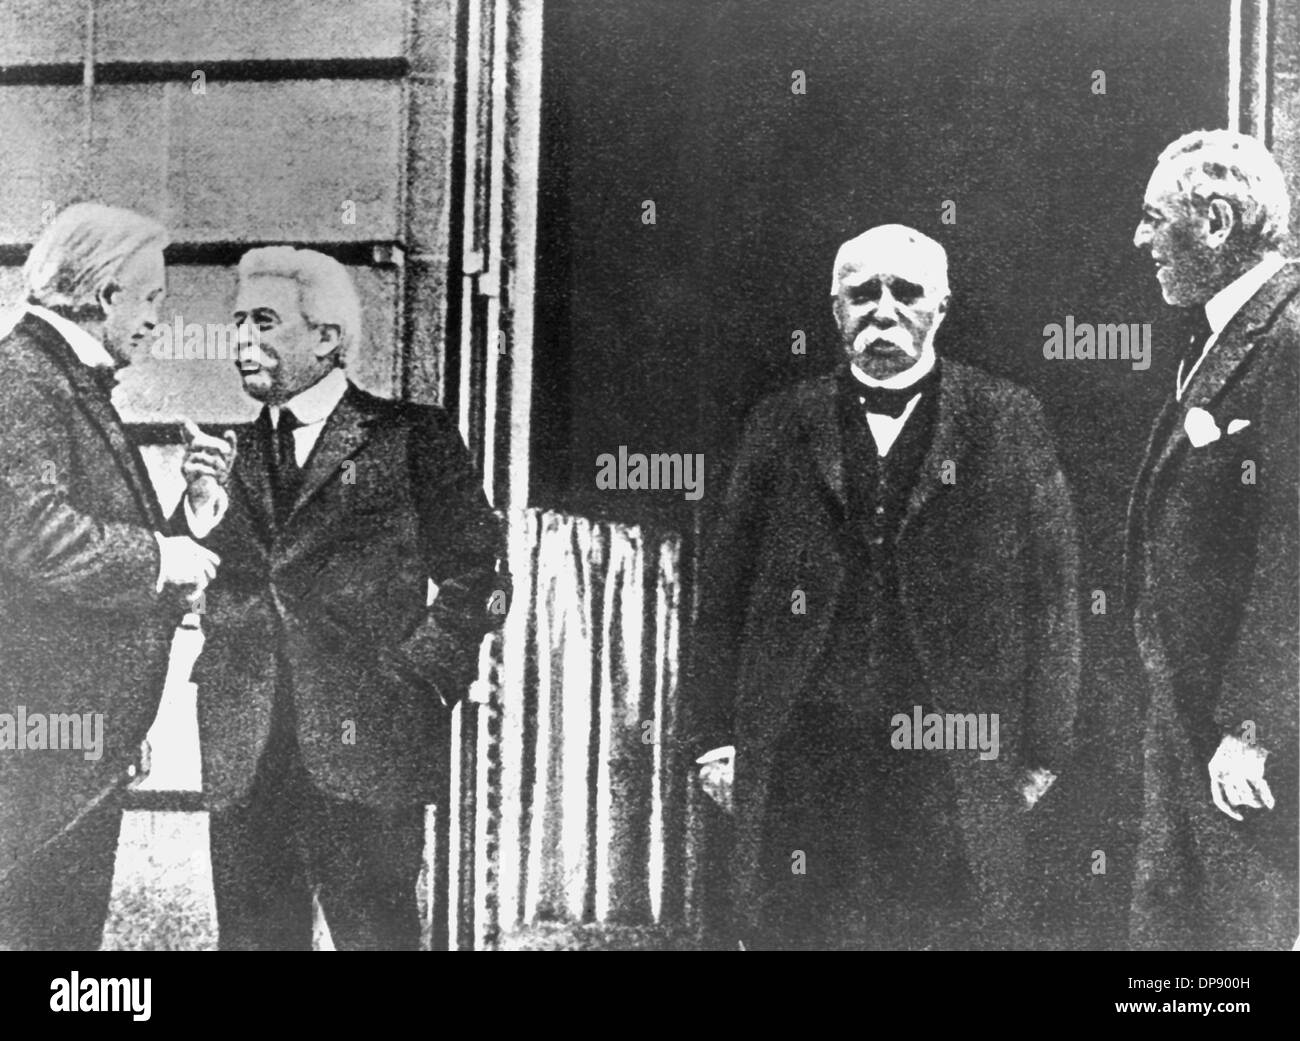 The 'Big Four' of 1919, who decided on the content of the Treaty of Versailles almost on their own (l-r): Minister presidents David Lloyd George (England), Vittorio Emanuele Orlando (Italy), Georges Benjamin Clemenceau (France) and the American president Woodrow Wilson, photographed in 1919. The Treaty of Versailles was the most important of the treaties of Paris that ended World War I in 1919/1920. The Treaty of Versailles was signed in the Palace of Versailles on the 28th of June in 1919 between Germany and 27 allied and associated powers. It became law on the 20th of January in 1920. Witho - Stock Image